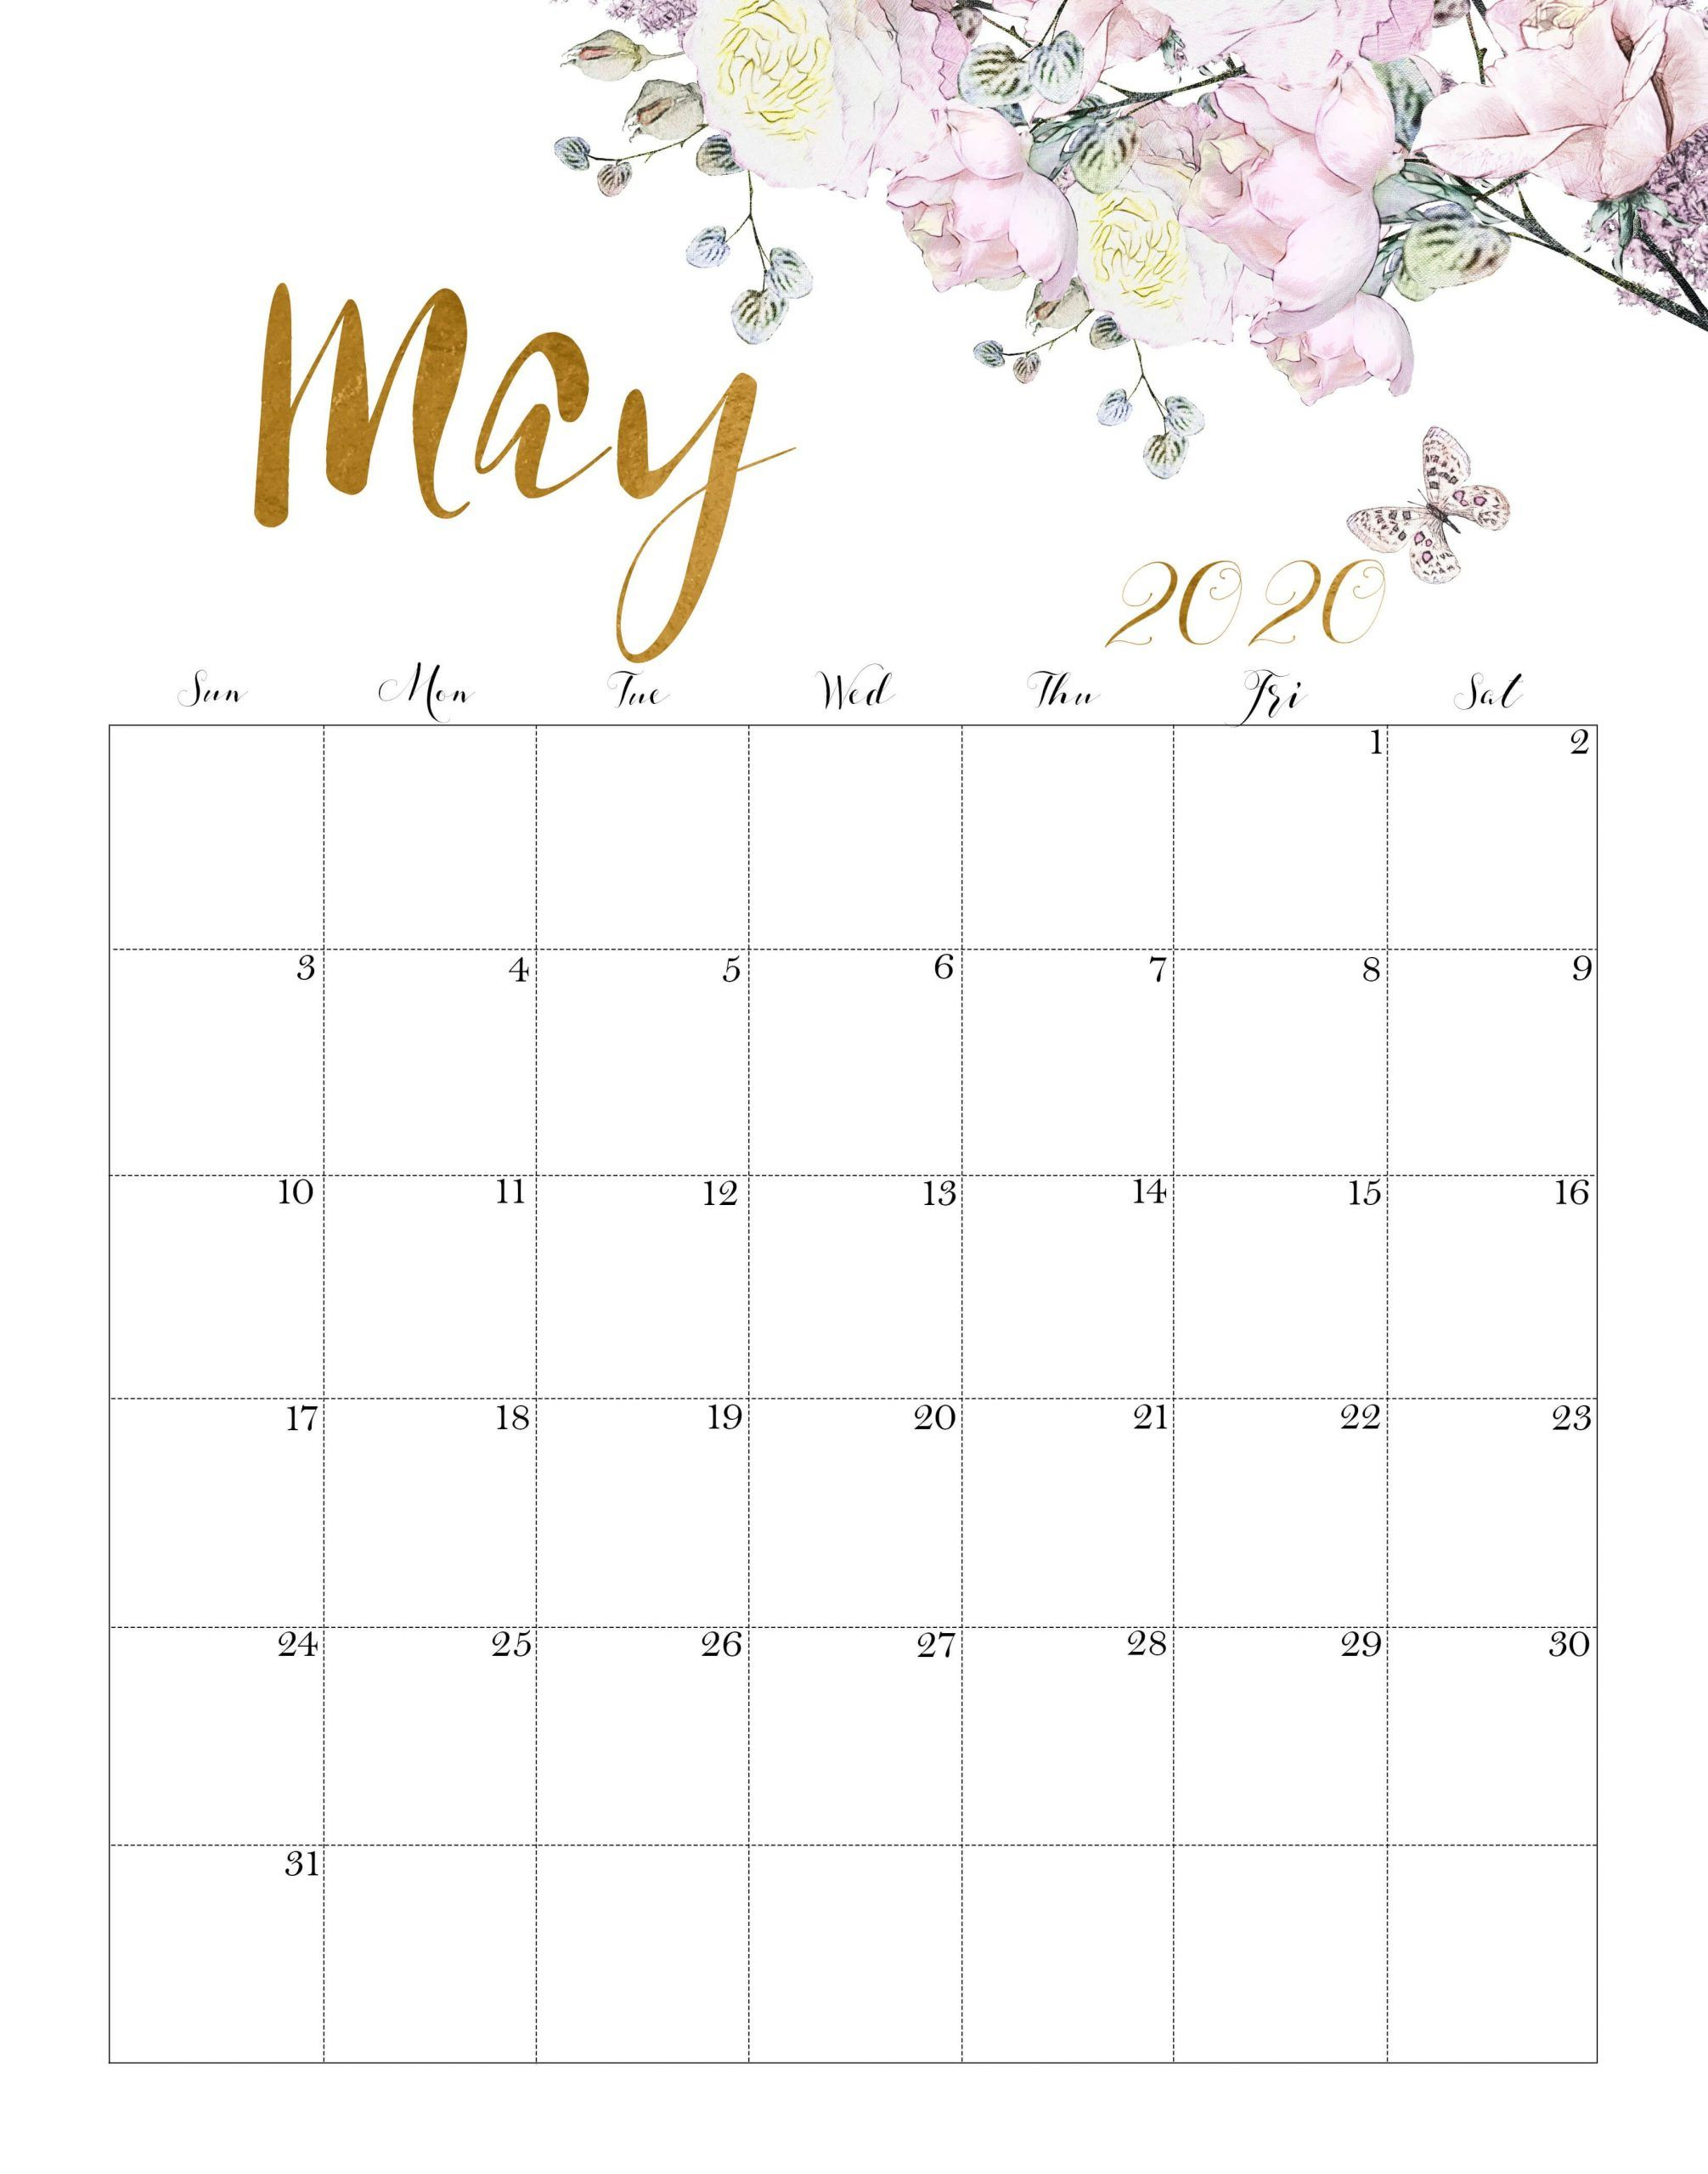 Here Are Some Examples Of May 2020 Calendar That You Can